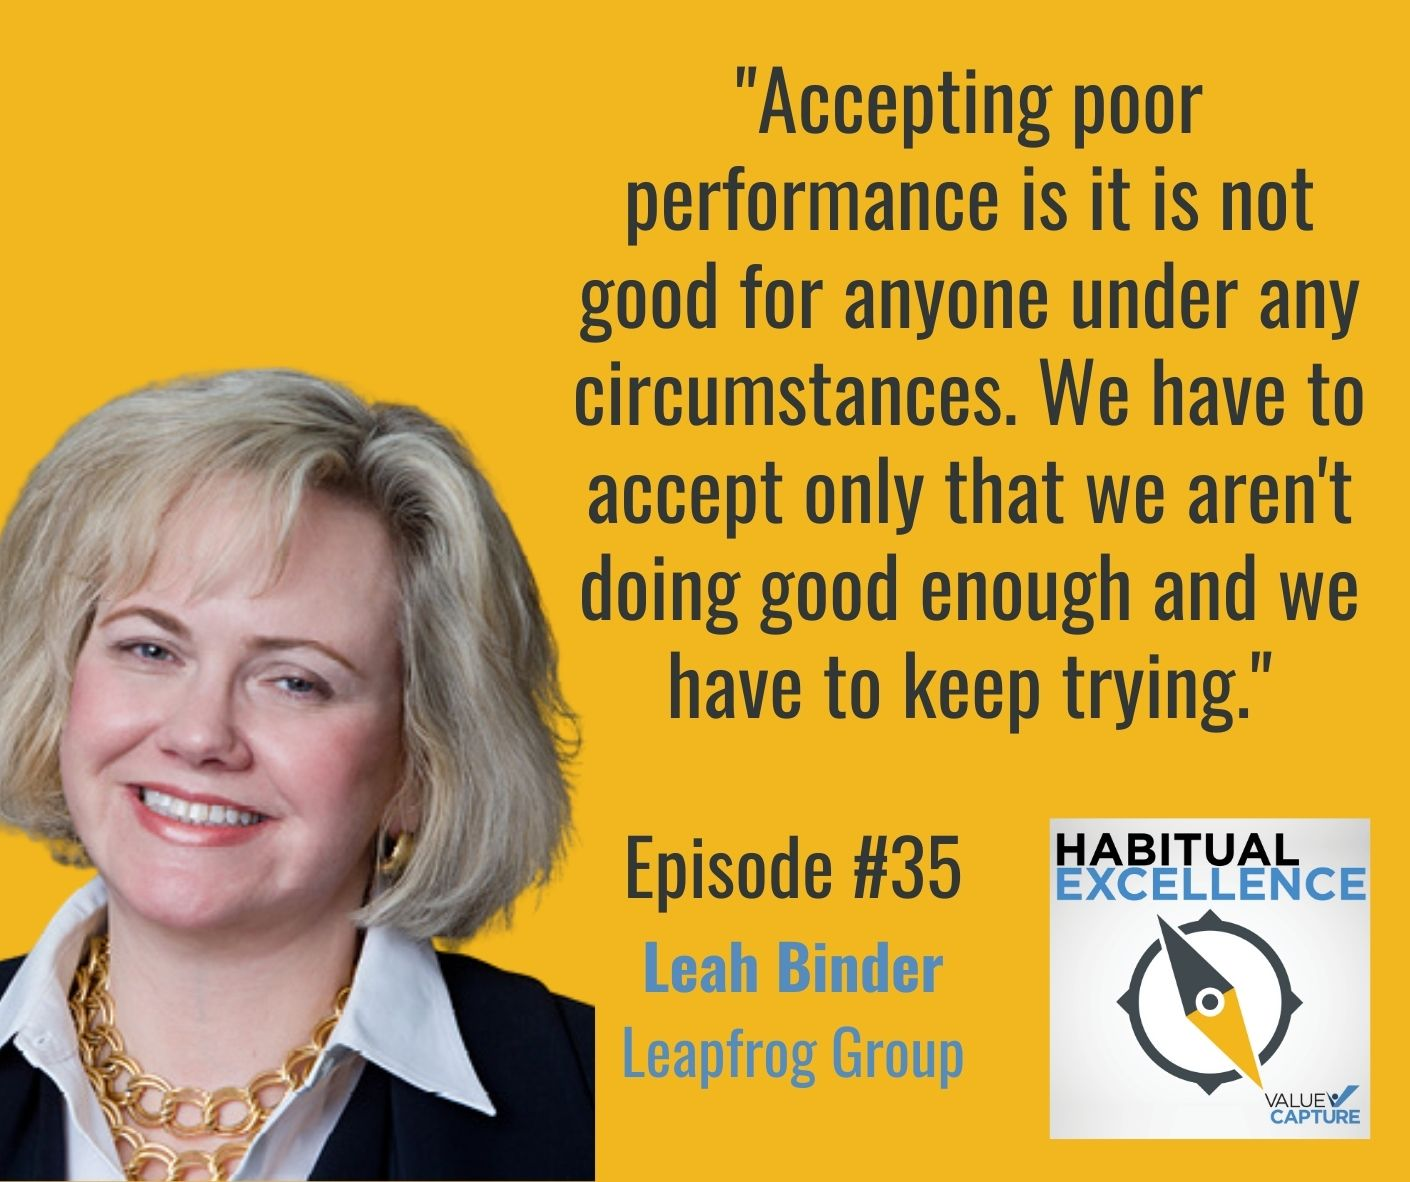 """""""Accepting poor performance is it is not good for anyone under any circumstances. We have to accept only that we aren't doing good enough and we have to keep trying."""""""